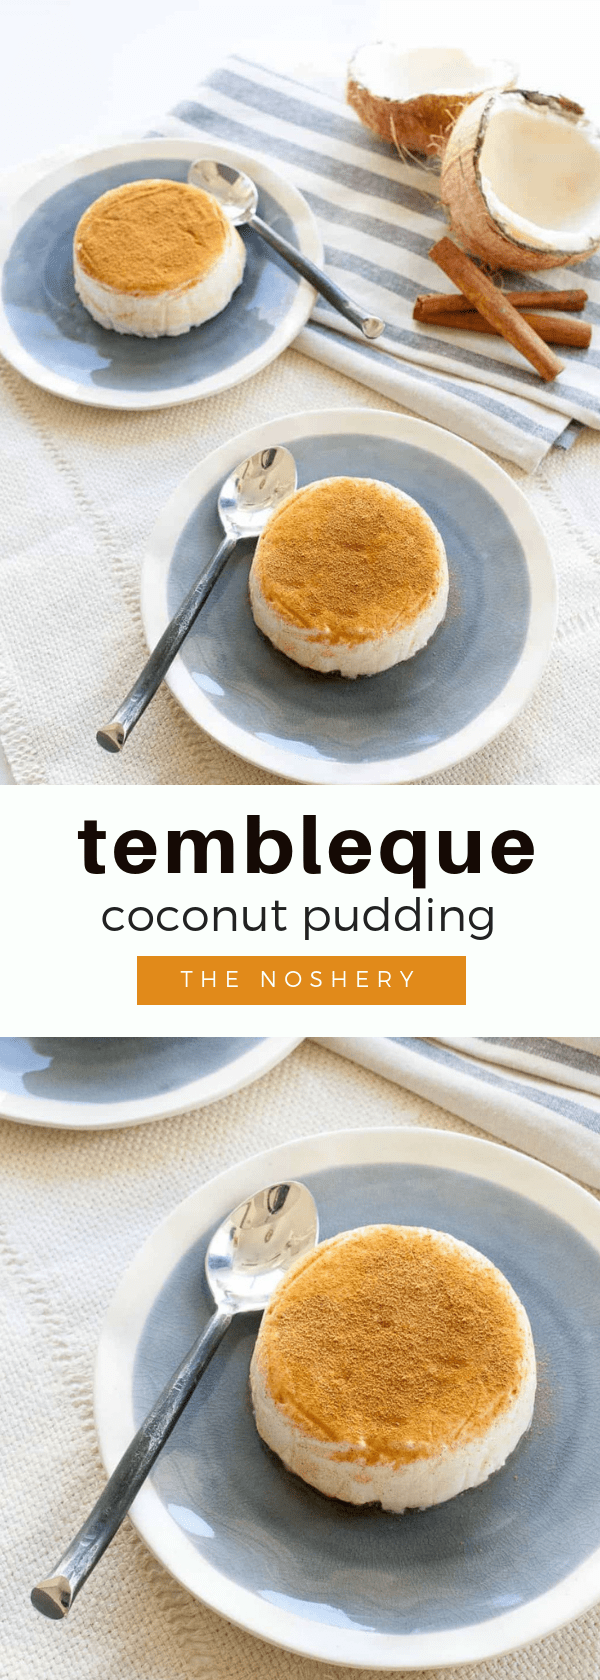 Tembleque (Coconut Pudding)